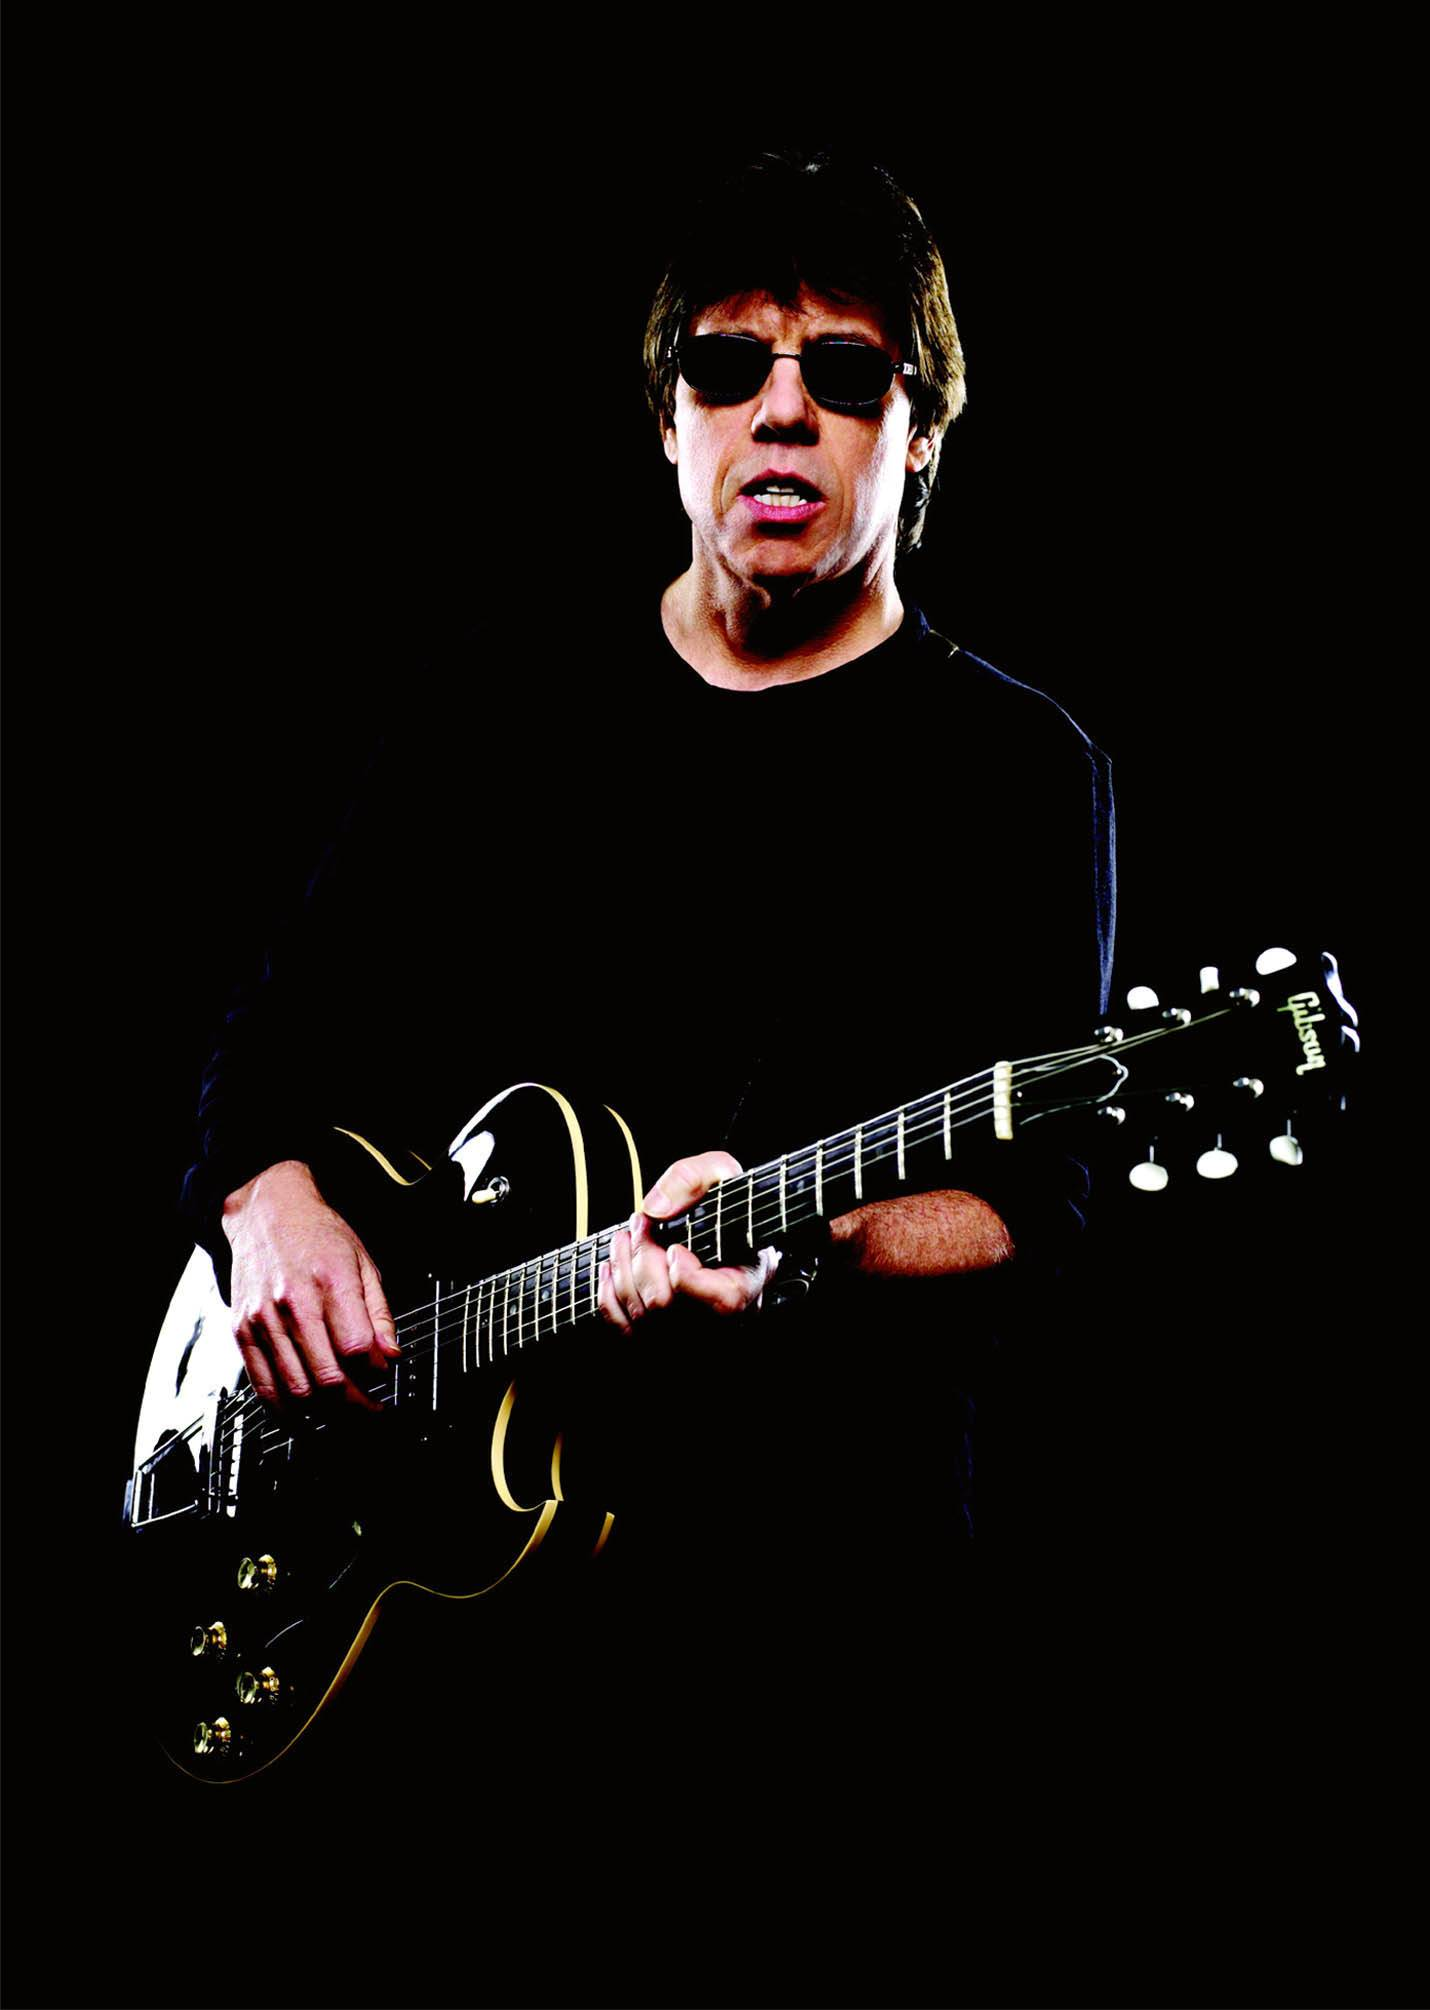 George Thorogood and his backup band The Destroyers will return to the main stage at Naperville's Ribfest on Sunday night. He'll headline a lineup that also features Foghat and Blue �yster Cult.